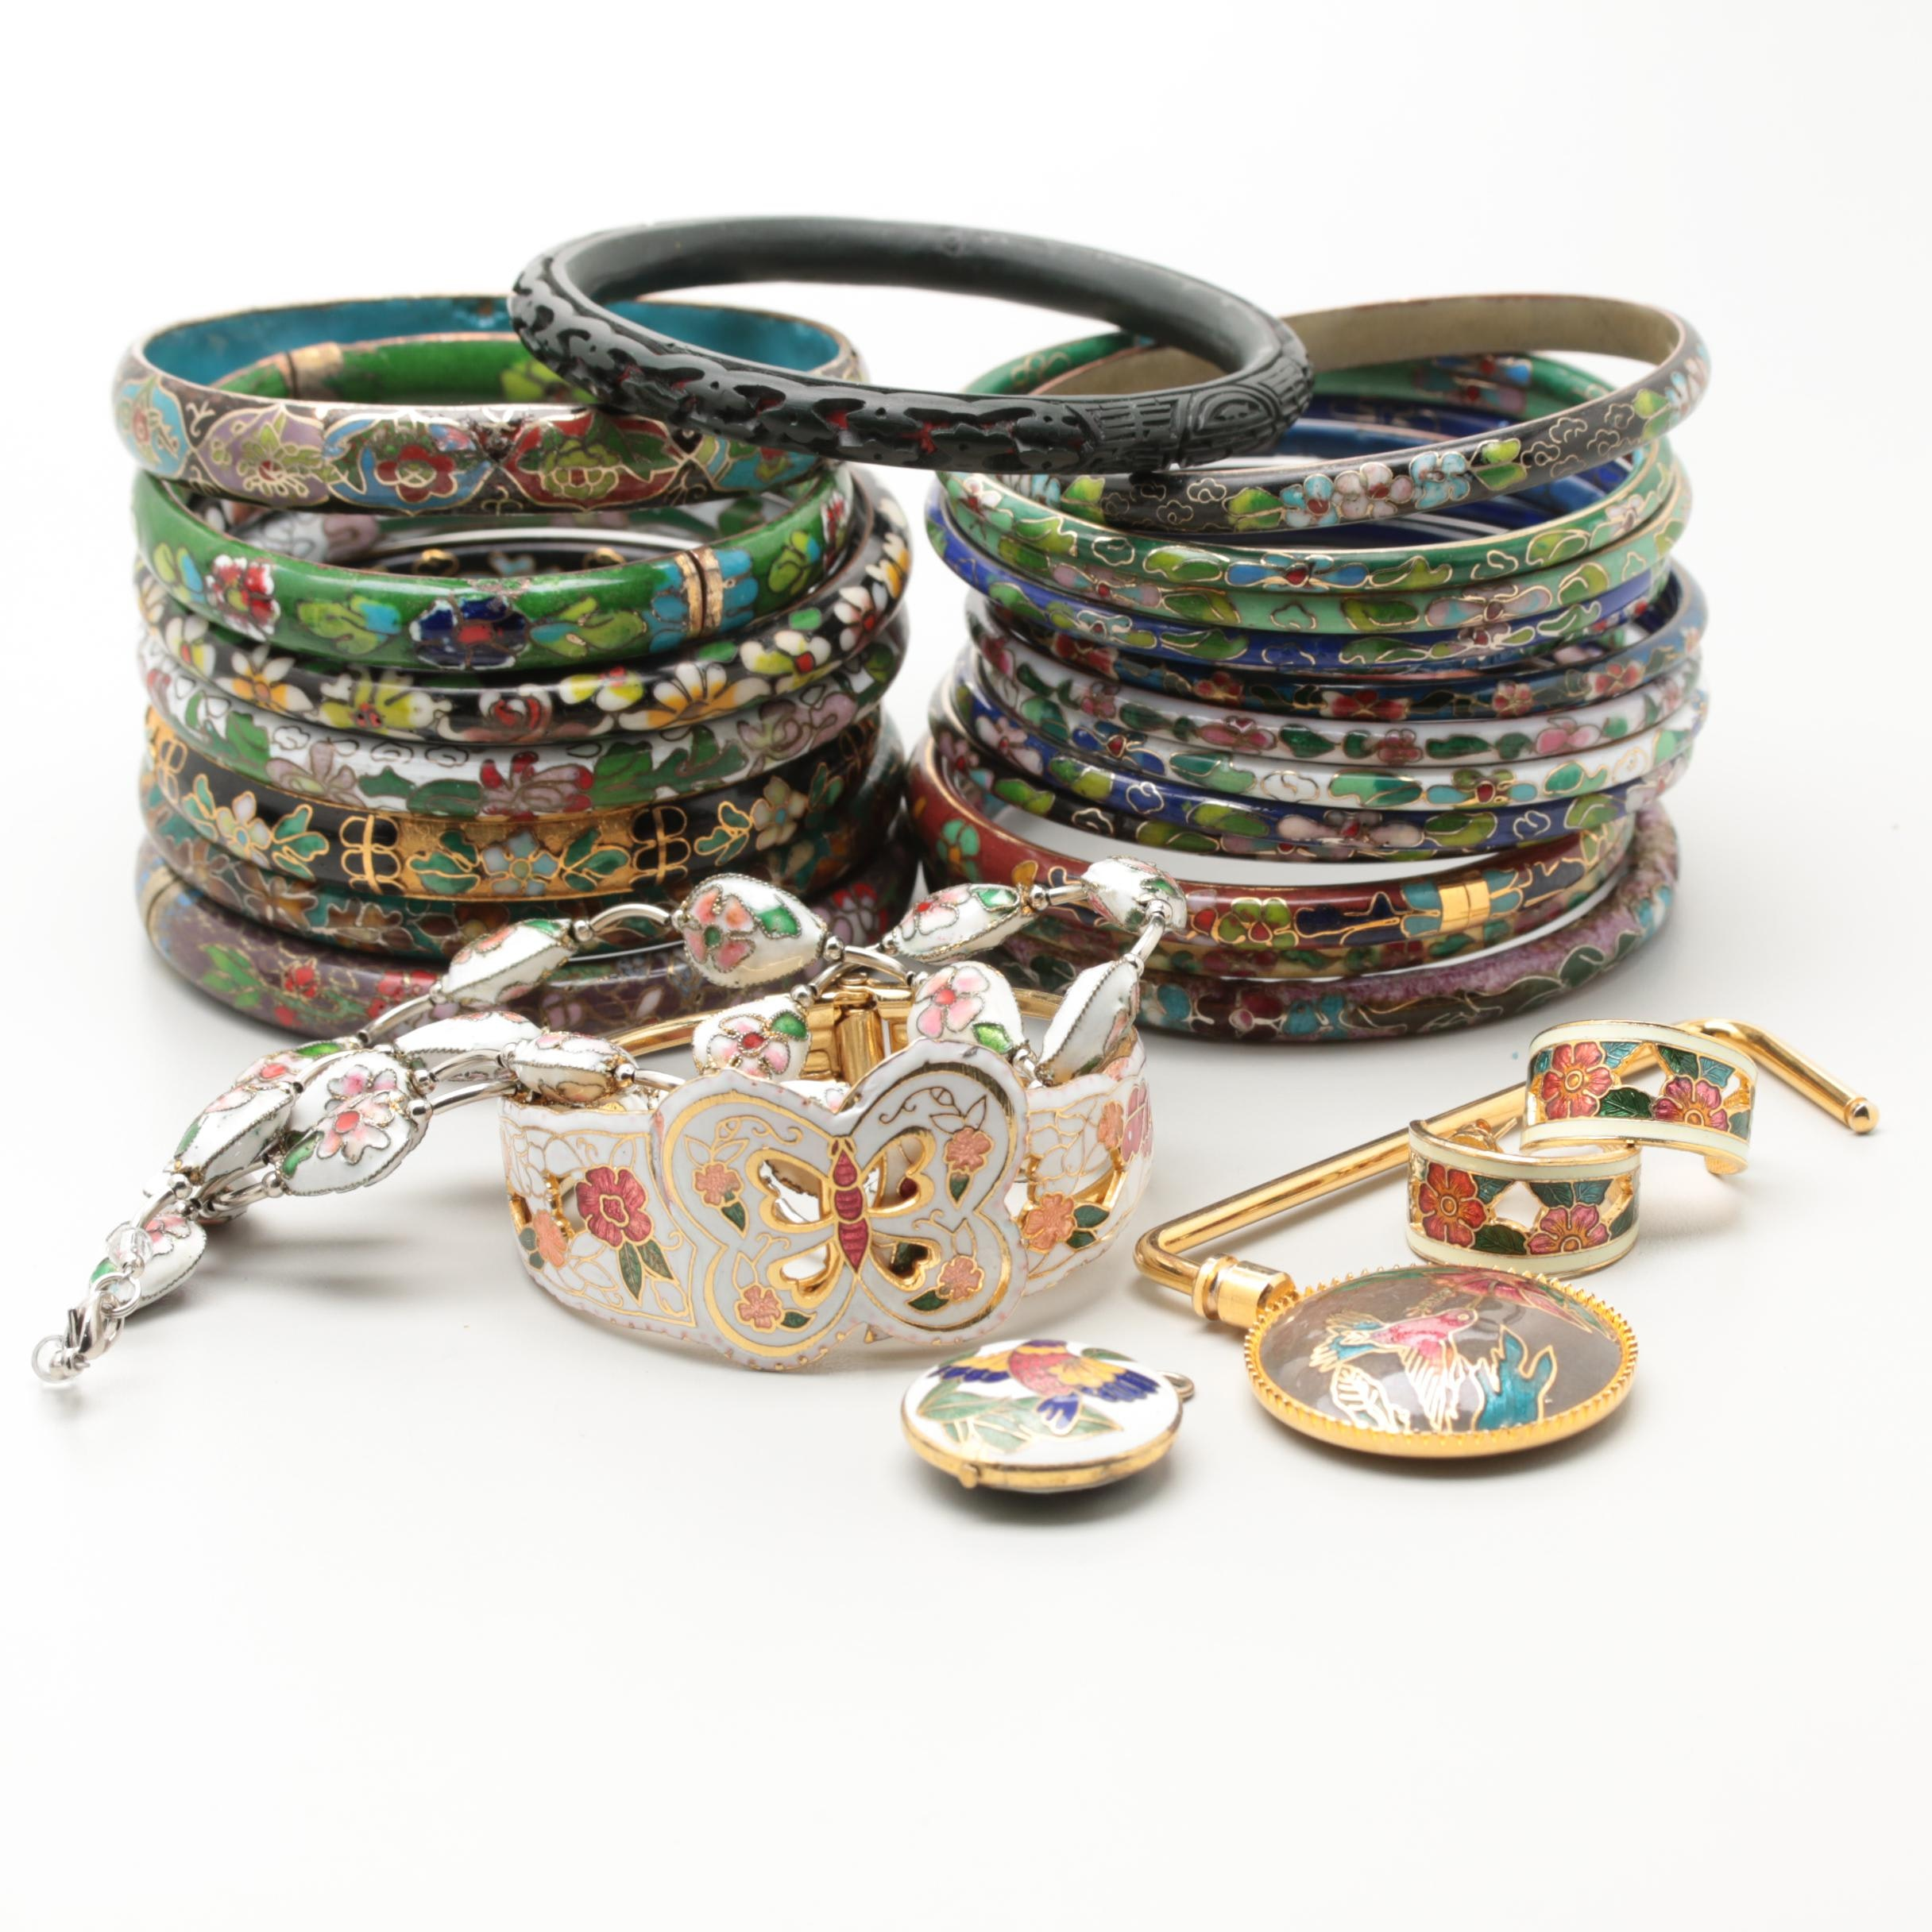 Large Collection of Chinese Cloisonné Jewelry